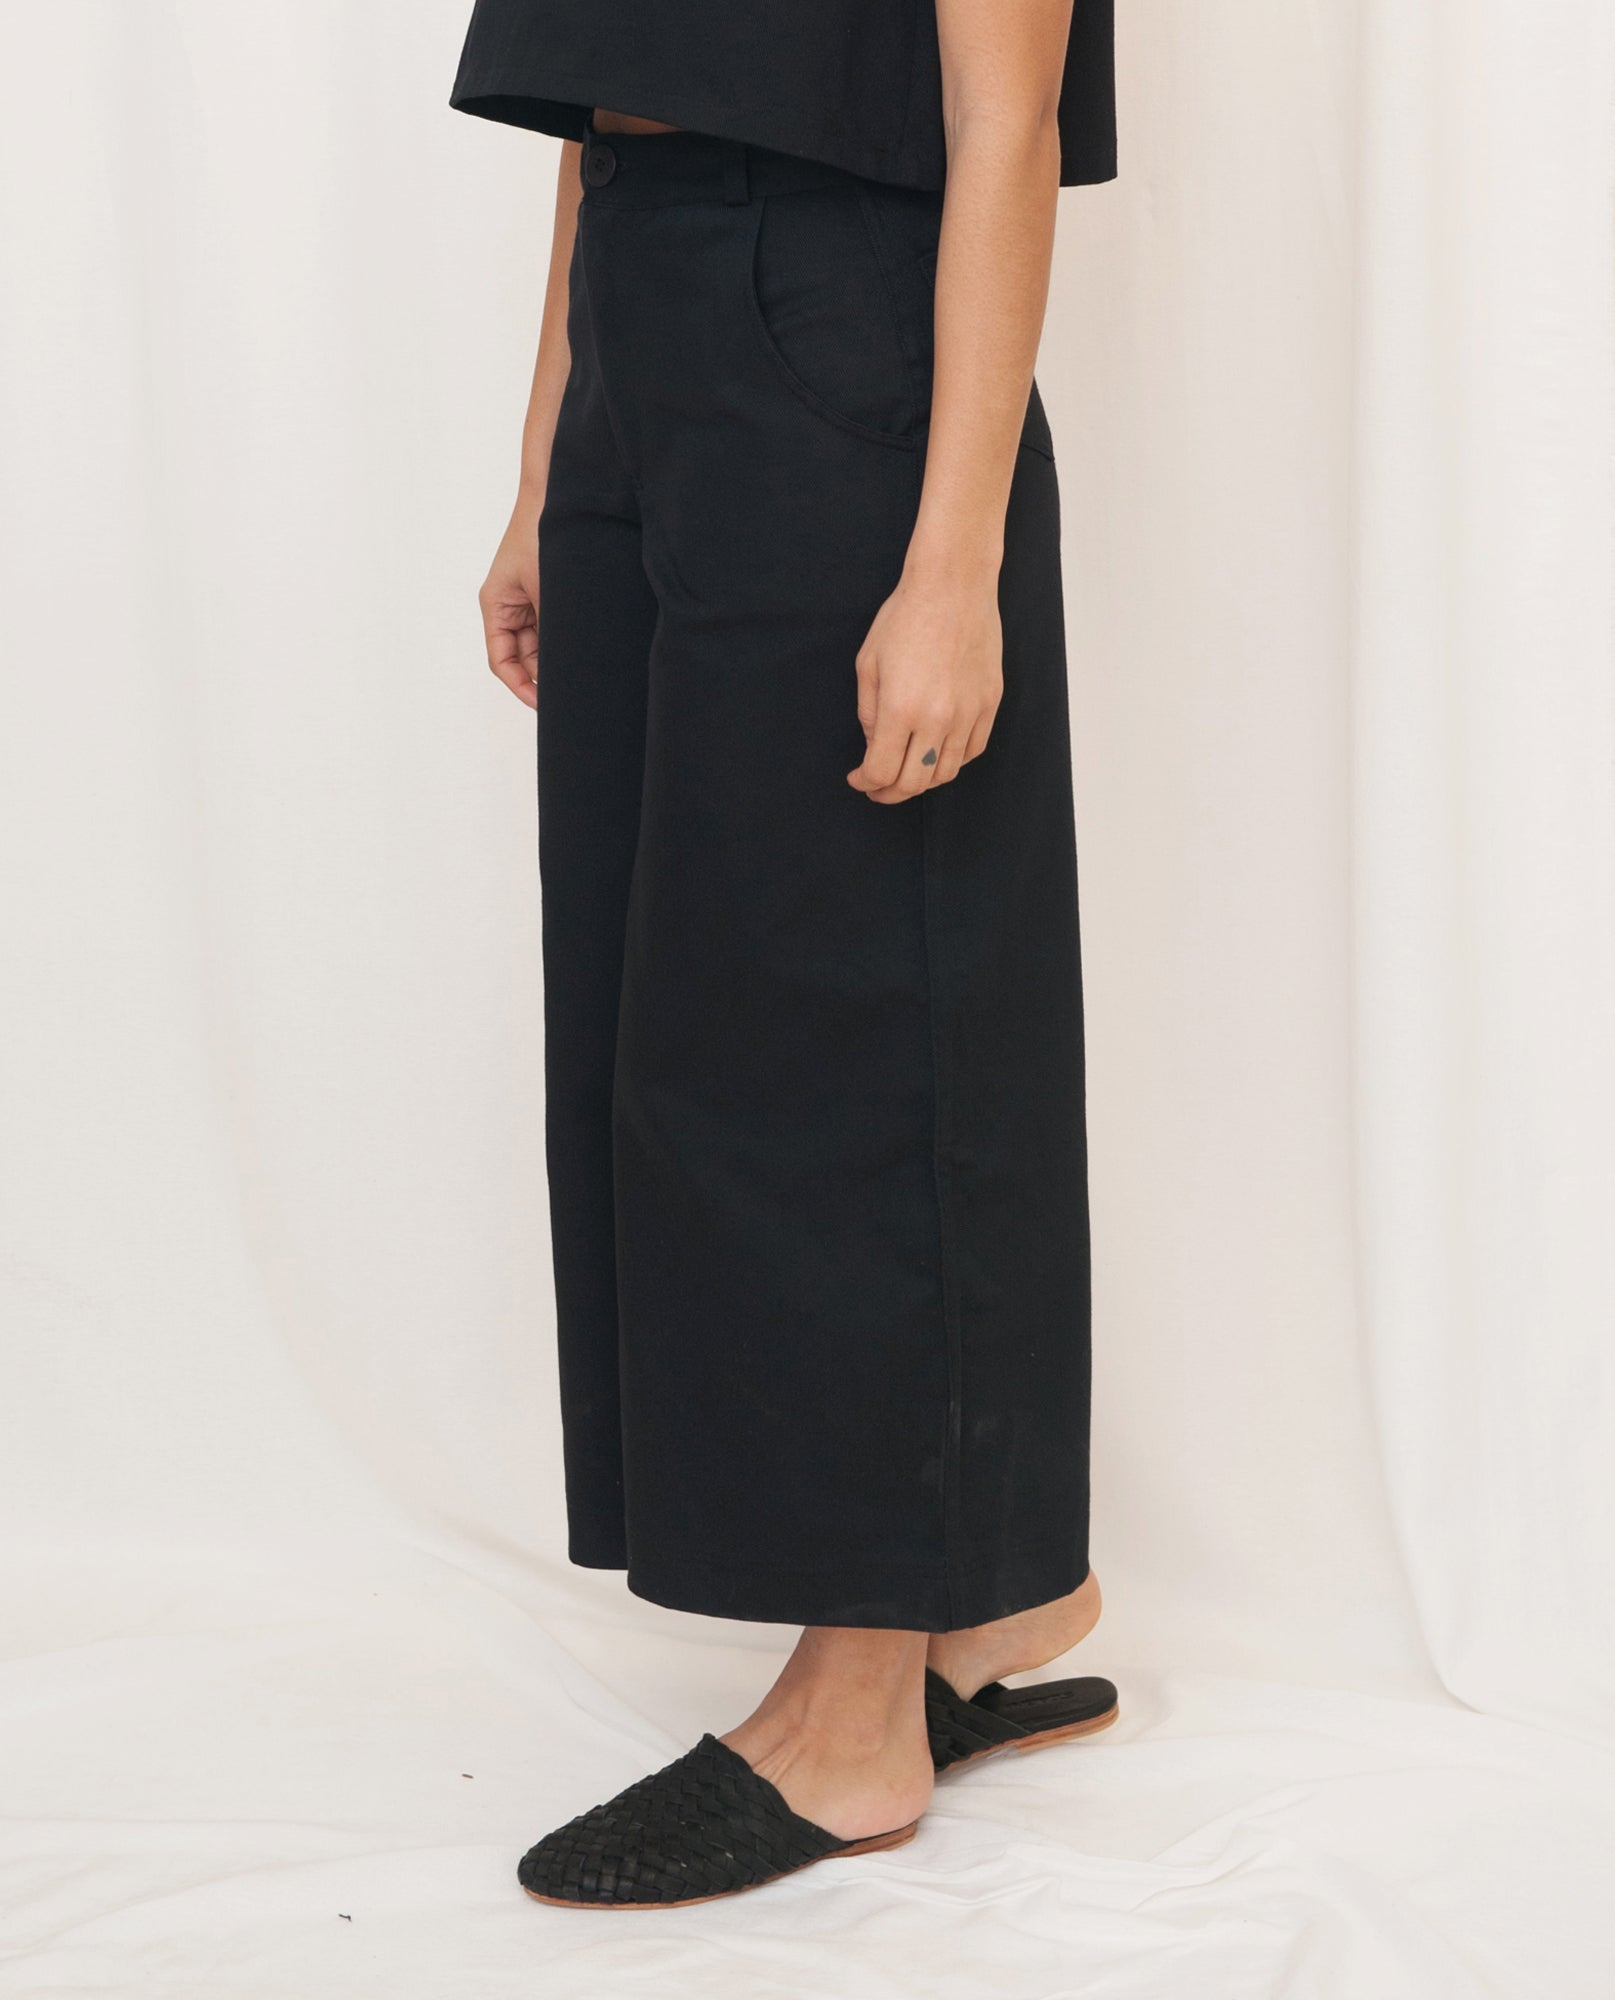 TRACEY-MAY Cotton Denim Culotte Trousers In Black